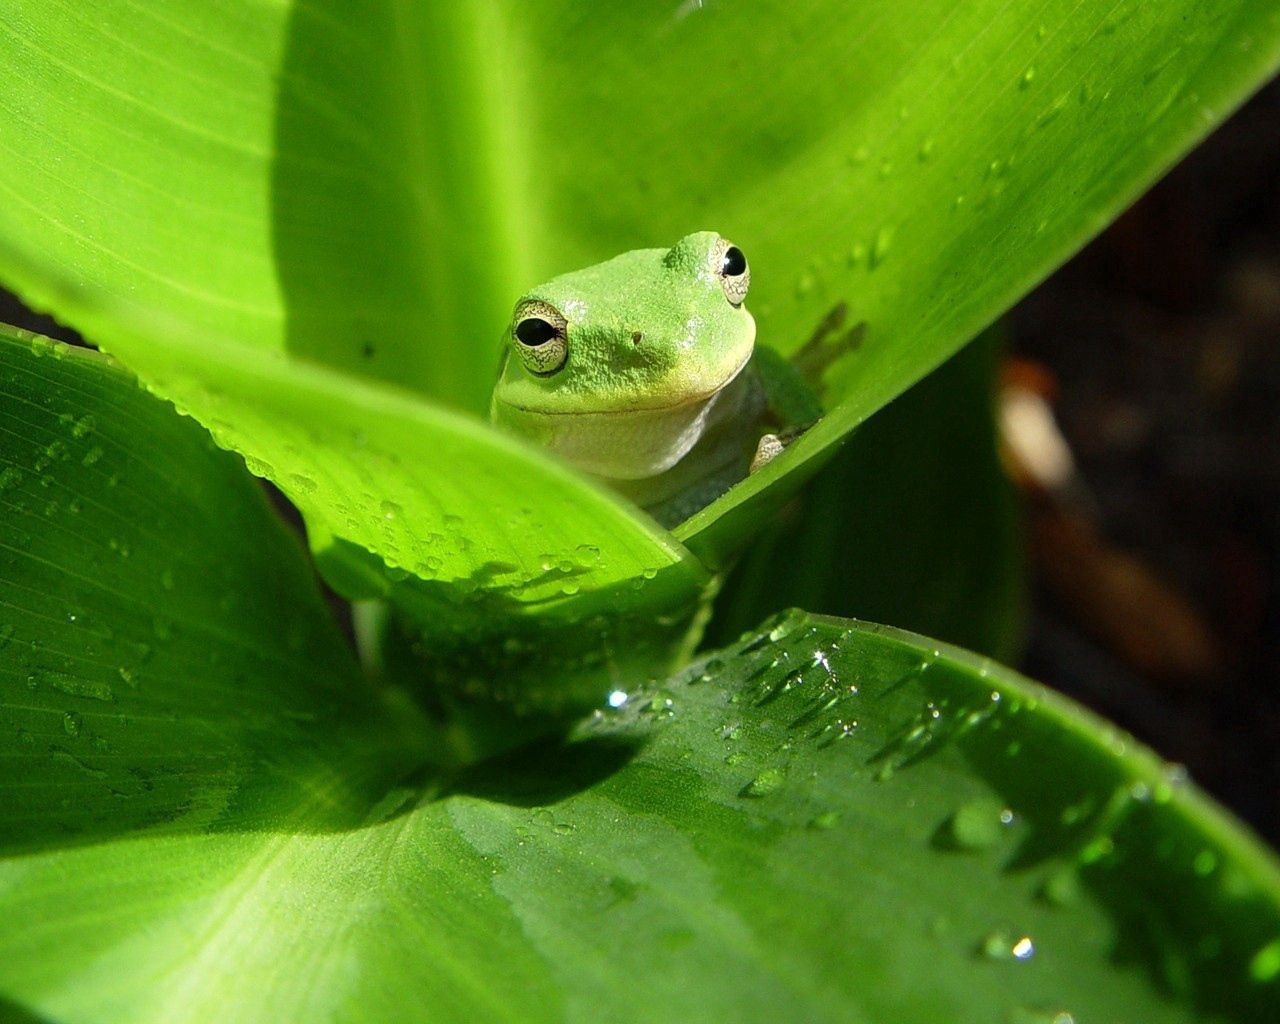 142798 download wallpaper Animals, Frog, Sheet, Leaf, Drops, Color screensavers and pictures for free